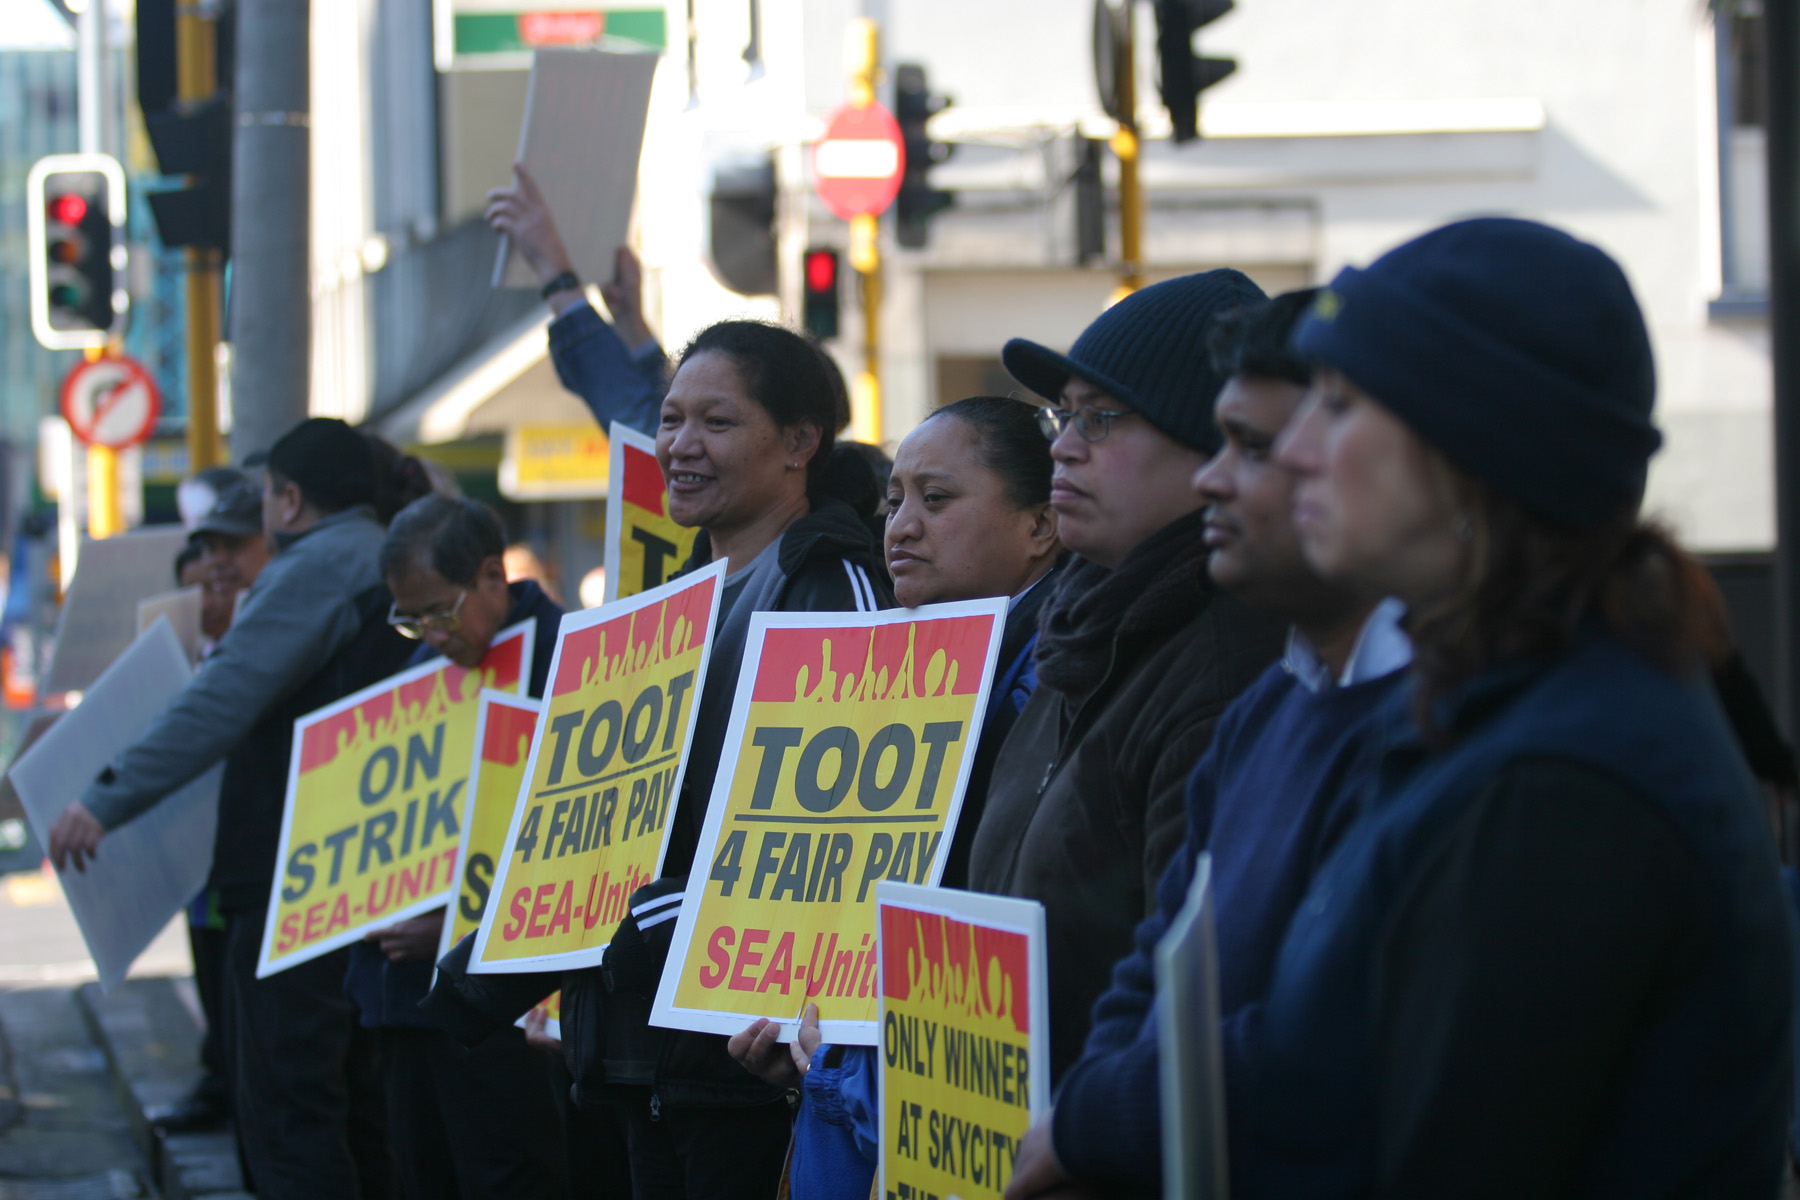 LET US STAY- Extend the amnesty for Migrant Workers in NZ. This Saturday 12 Noon at Unite